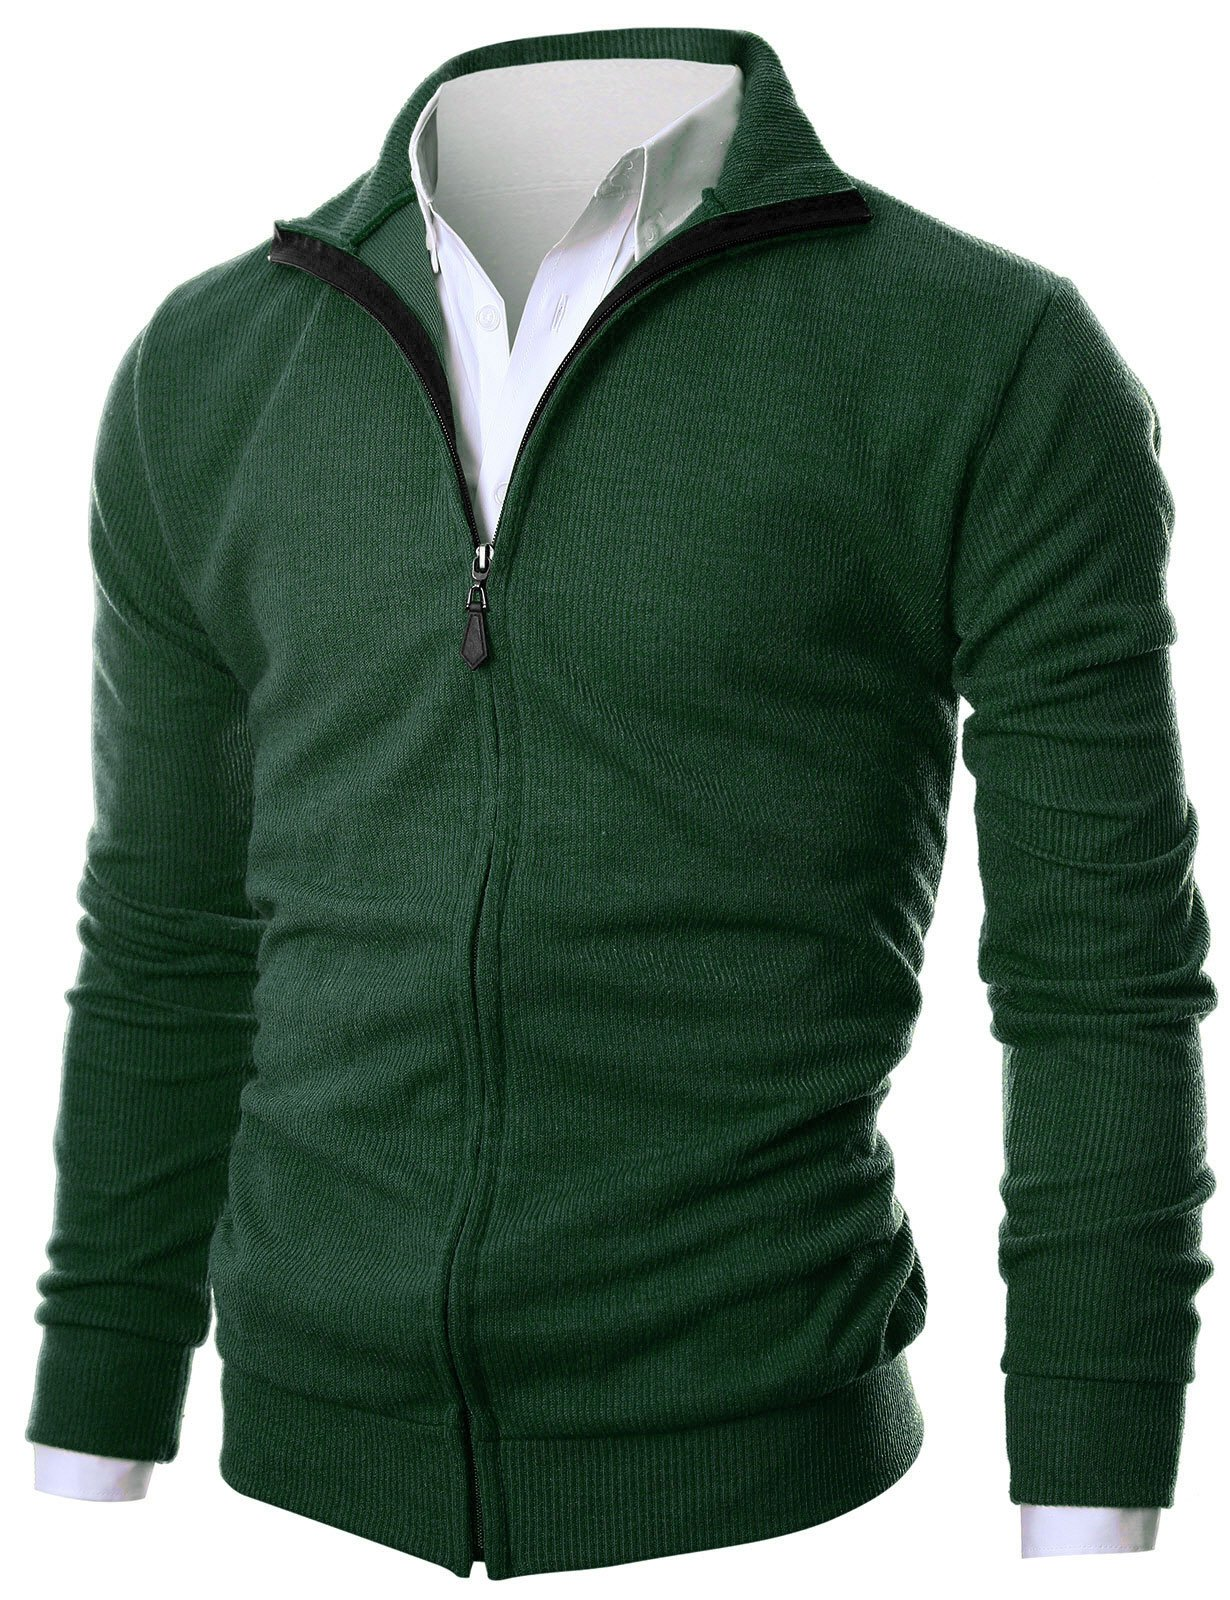 GIVON Mens Slim Fit Light Weight Full Zip Up Cardigan With Inside Soft Fabric/DCP047-DEEPGREEN-M